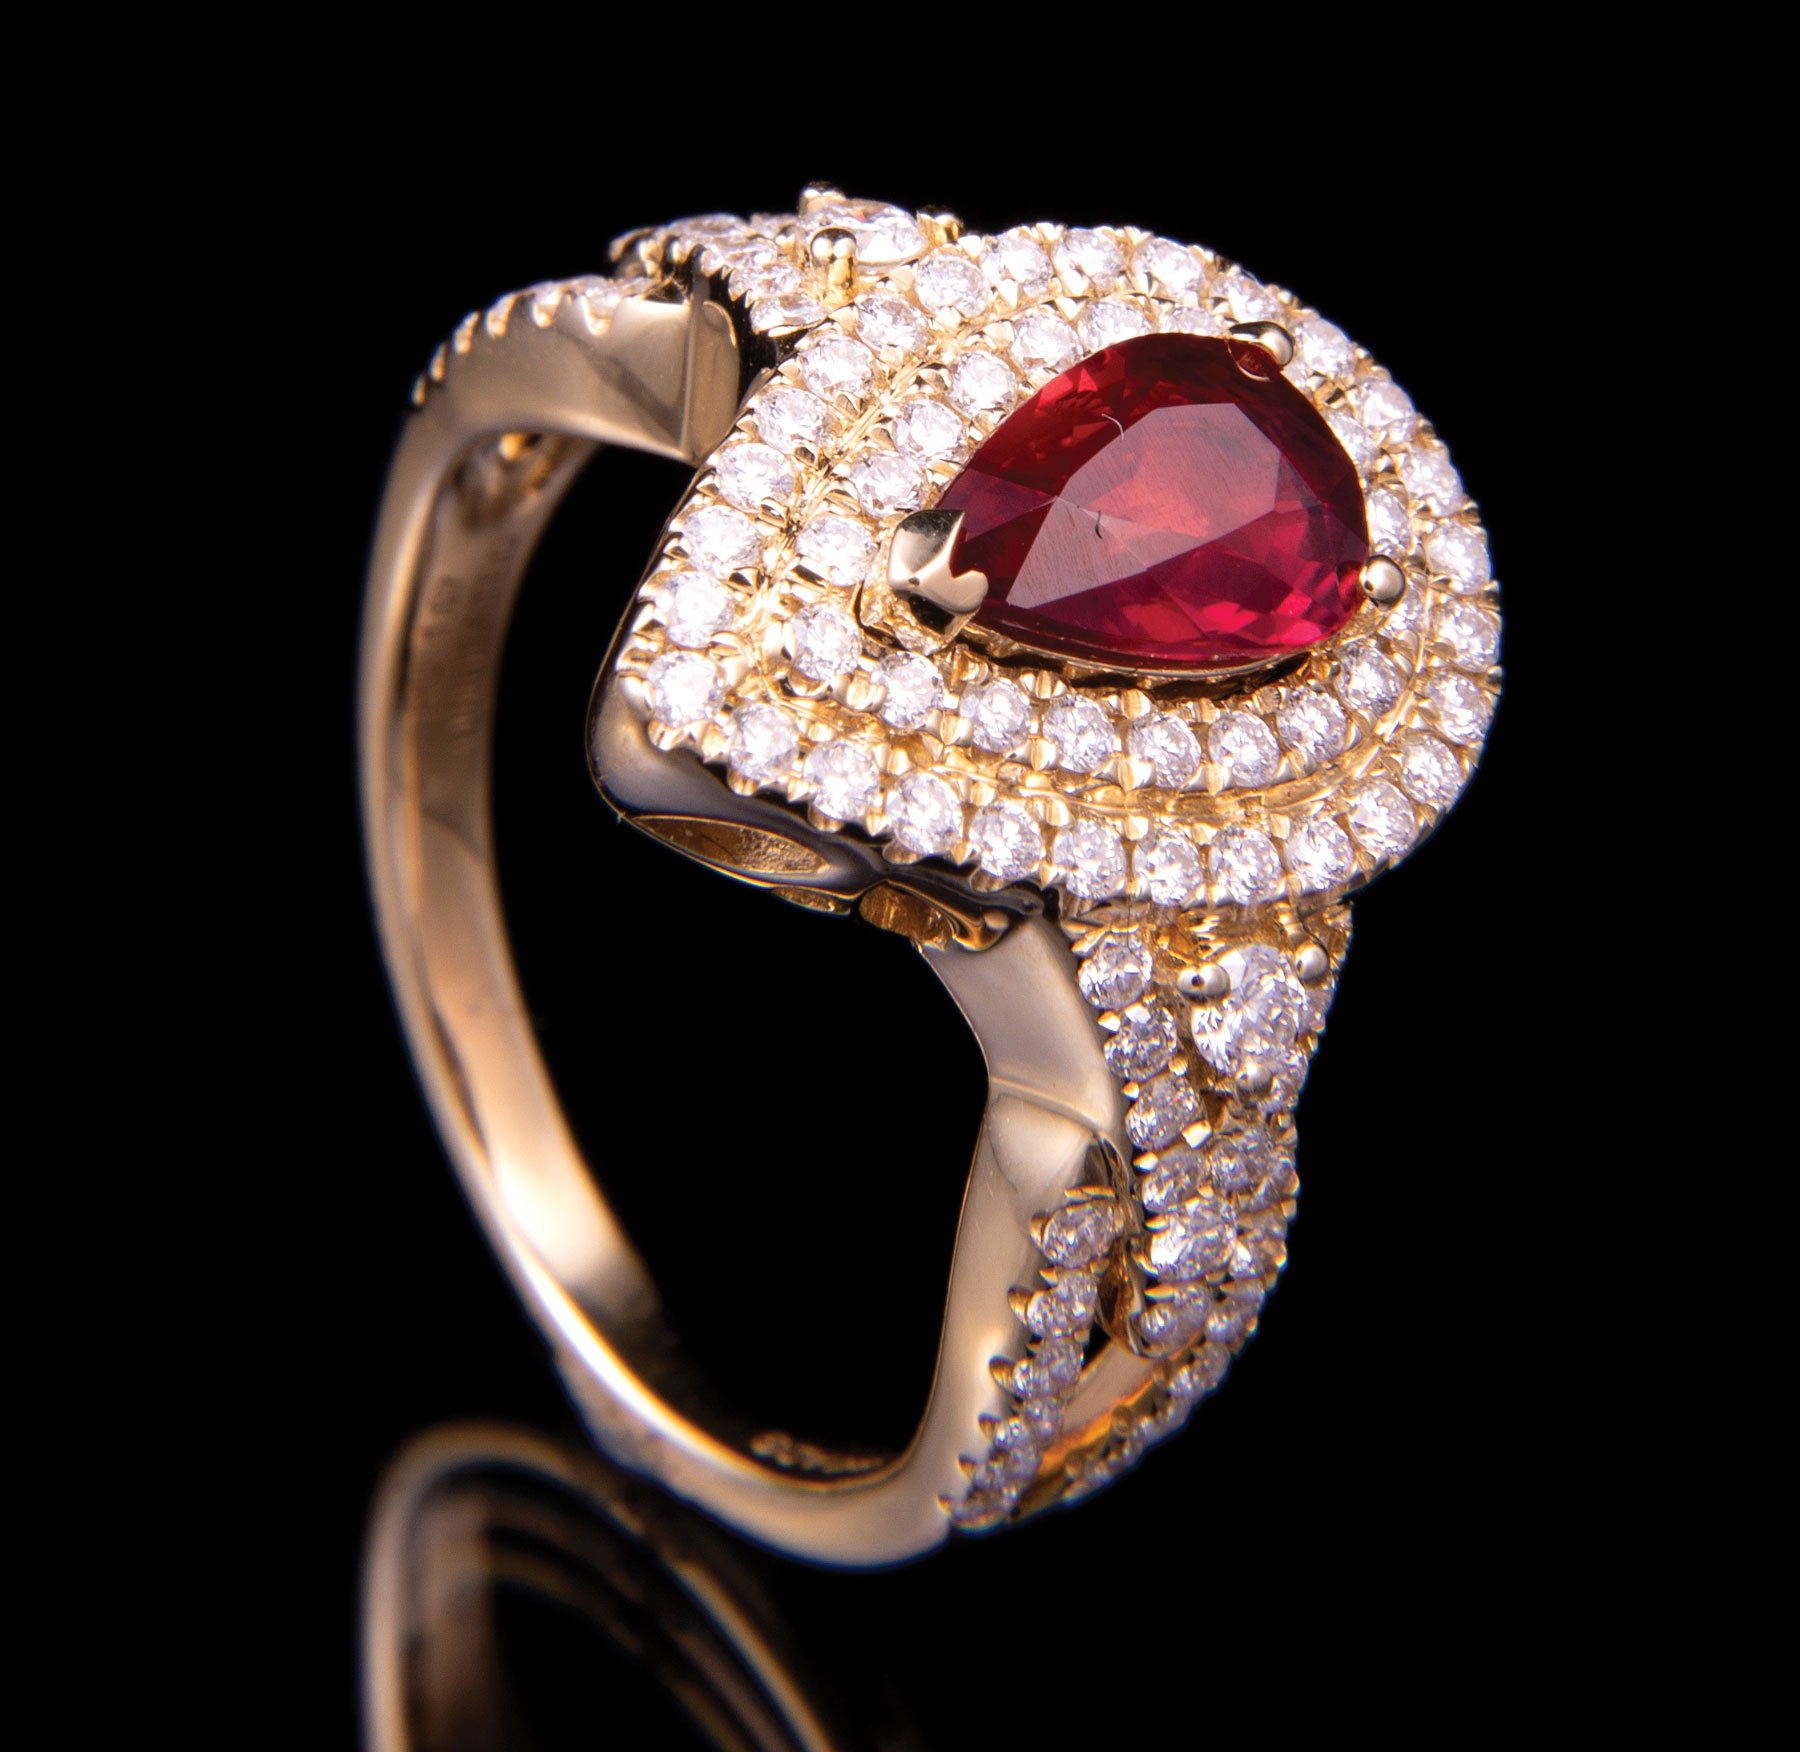 Lot 613 - 18 kt. Yellow Gold, Ruby and Diamond Ring , prong set pear-shaped faceted ruby, 8.00 x 5.50 x 3.00